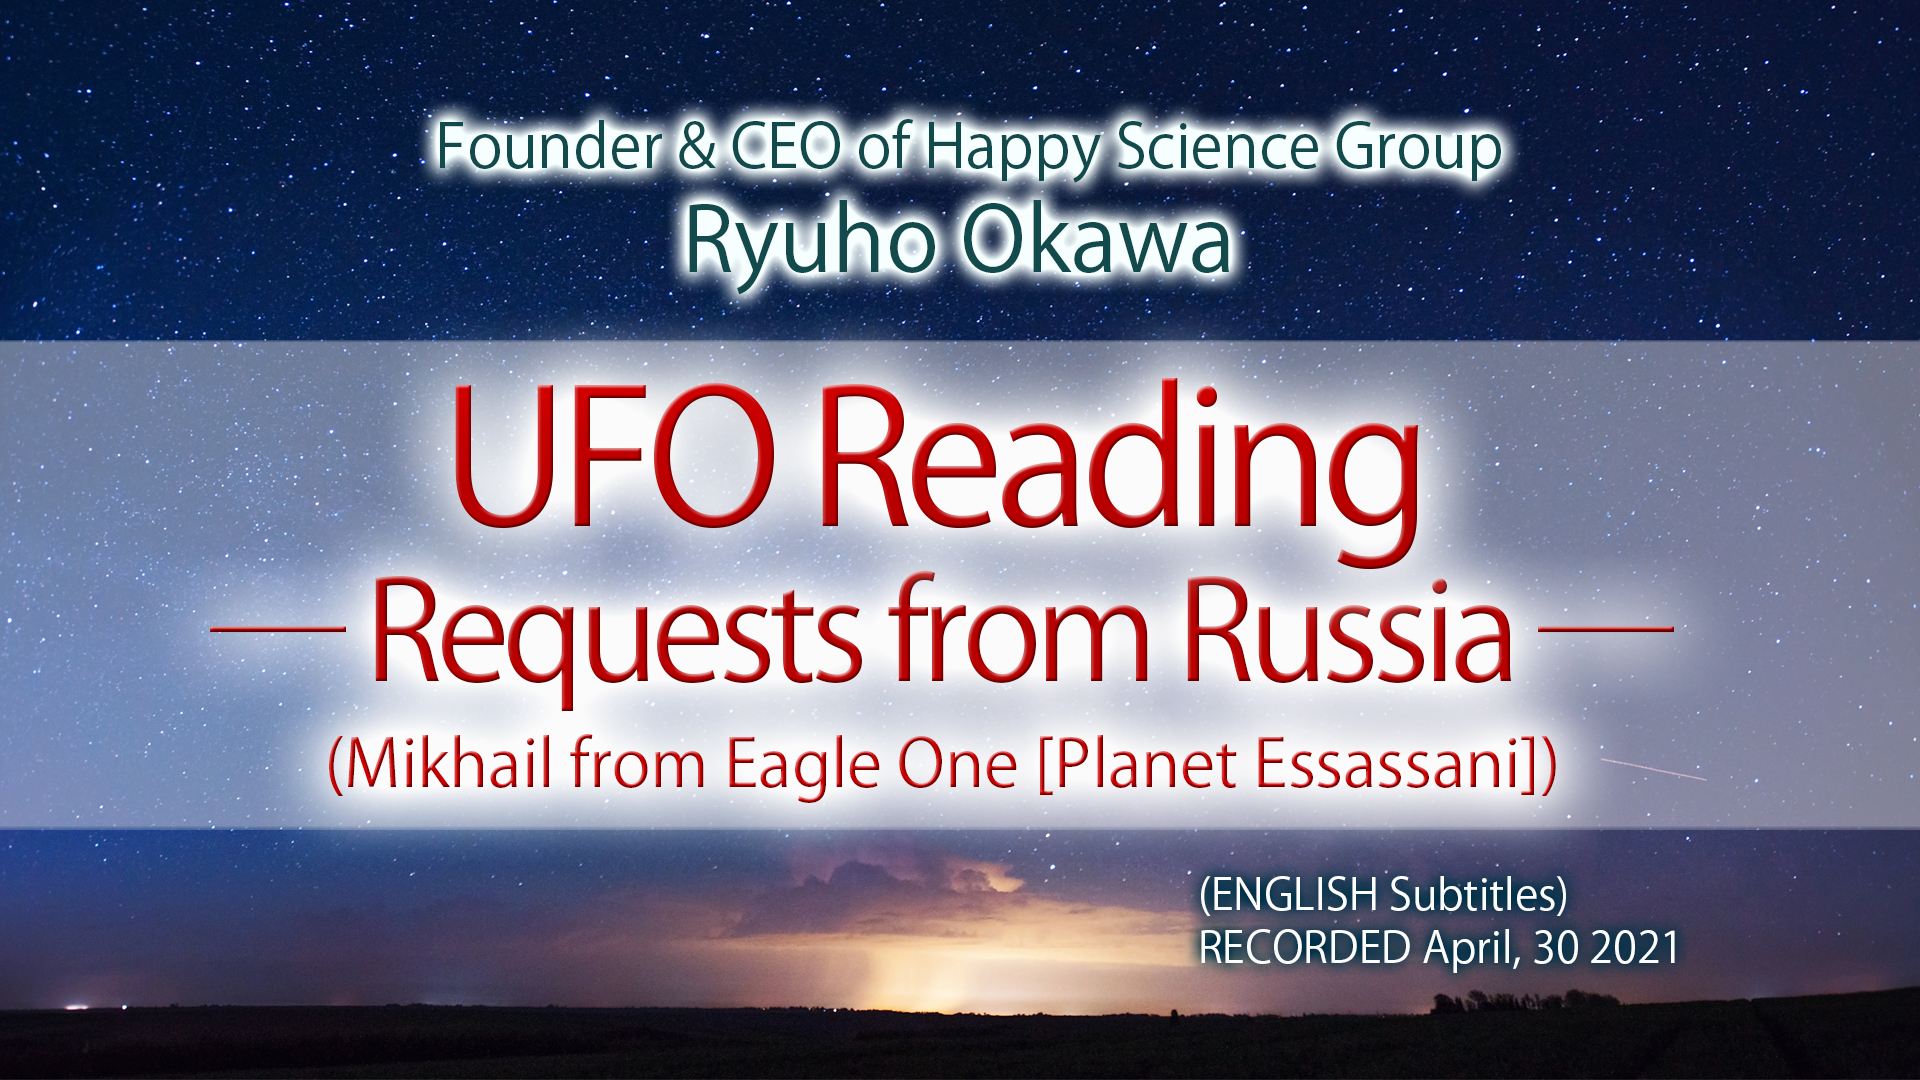 UFO Reading - Requests from Russia -(Mikhail from Eagle One [Planet Essassani]